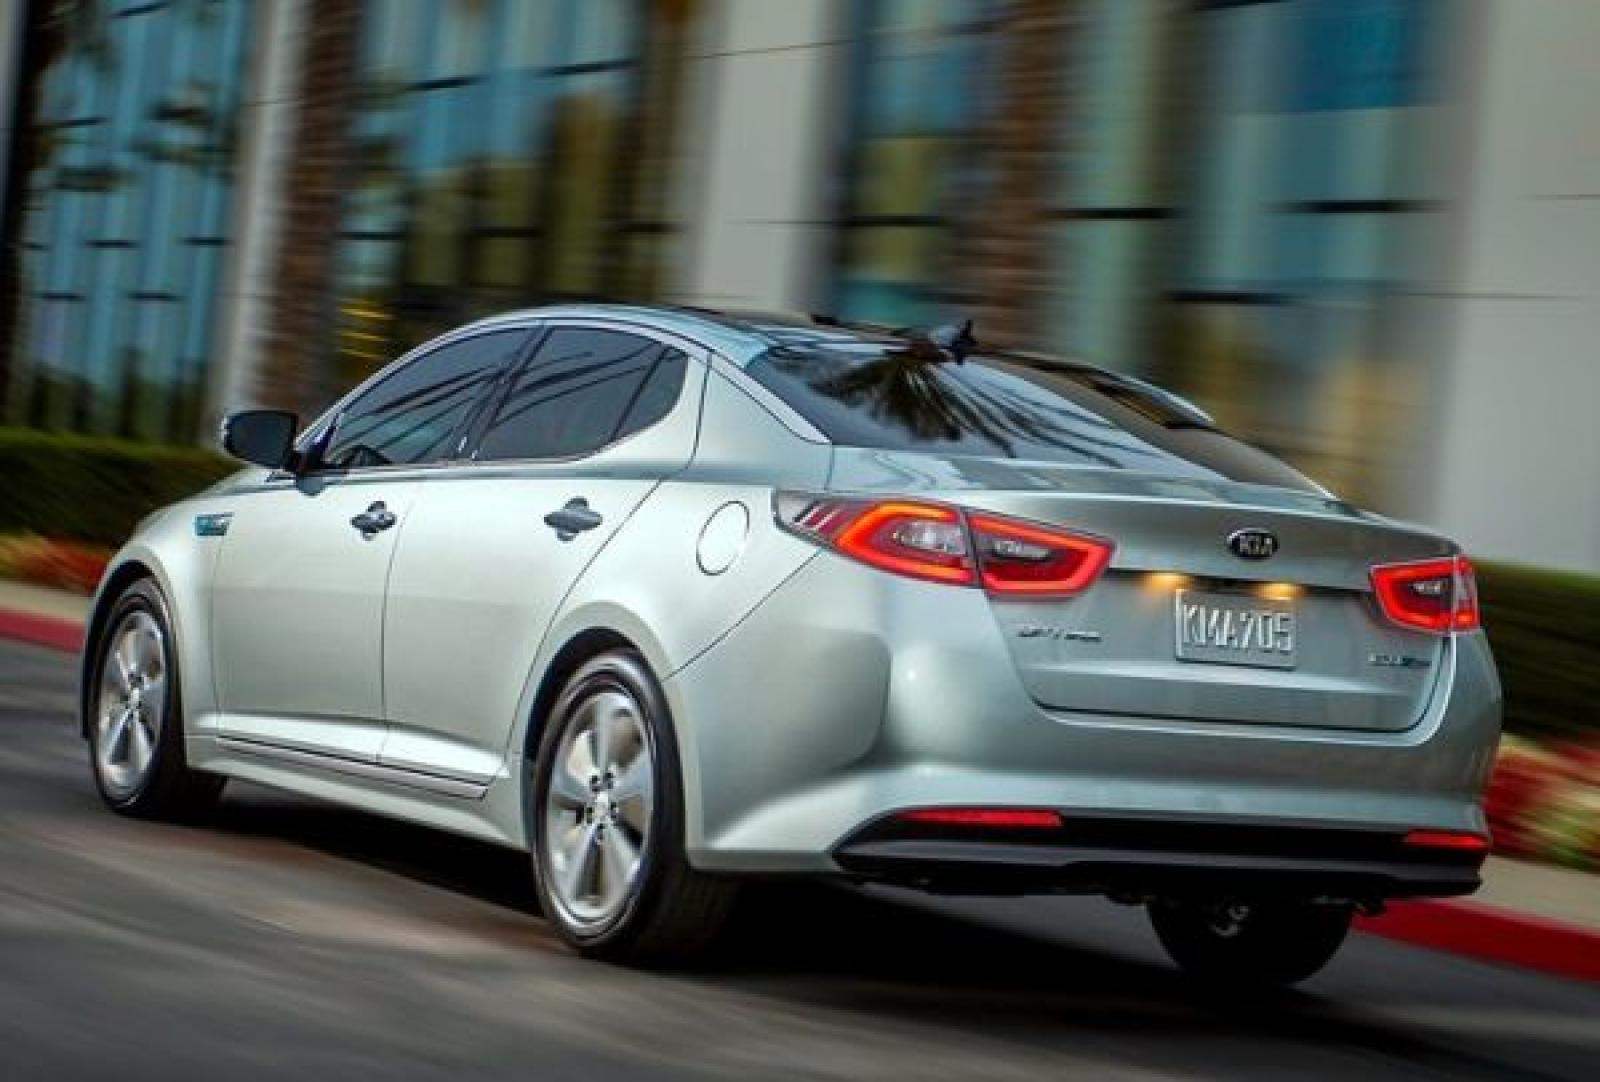 kia make en id lx hybrid name in vehicle model optima used miramichi inventory